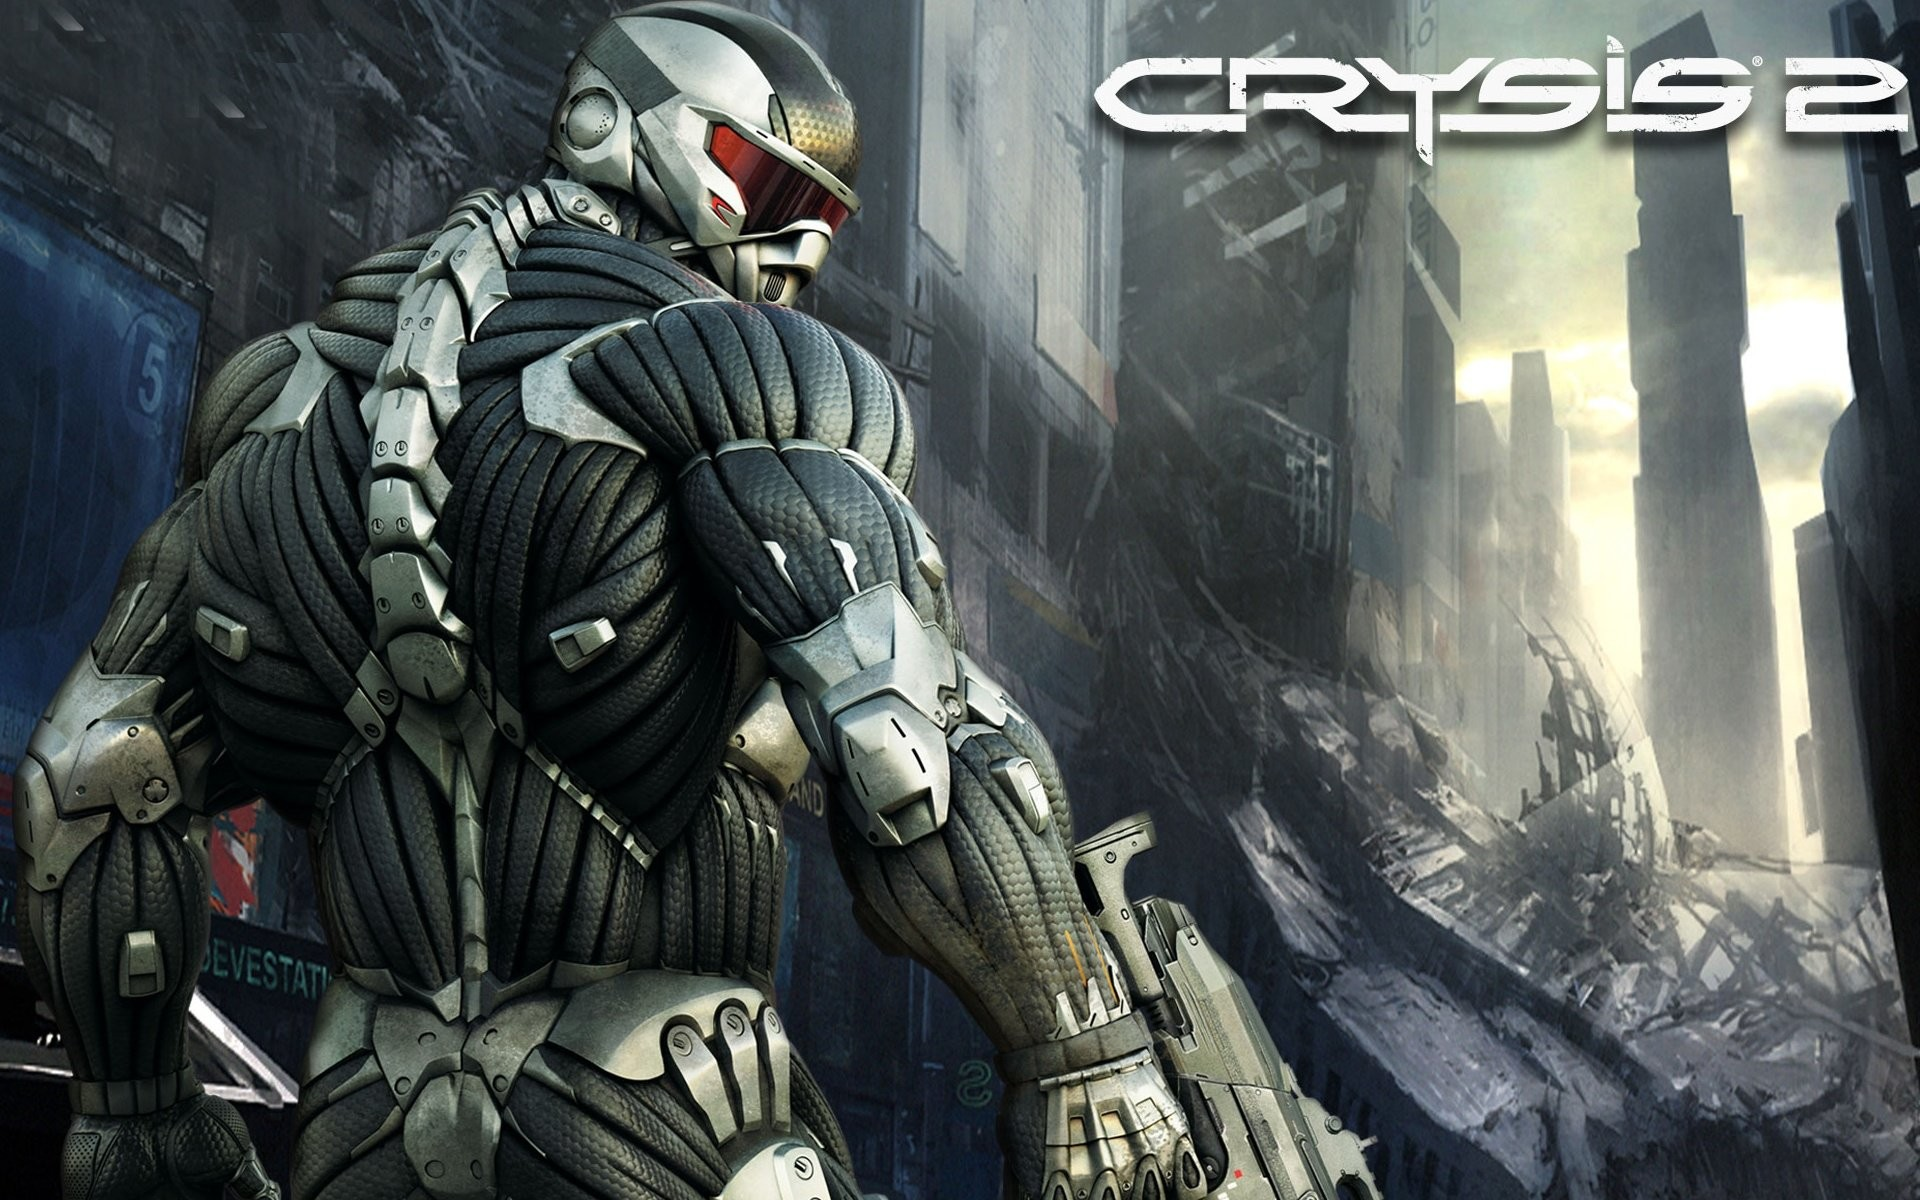 1920x1200 Crysis Wallpapers in HD 1600×1200 Crysis Wallpaper (43 Wallpapers) |  Adorable Wallpapers